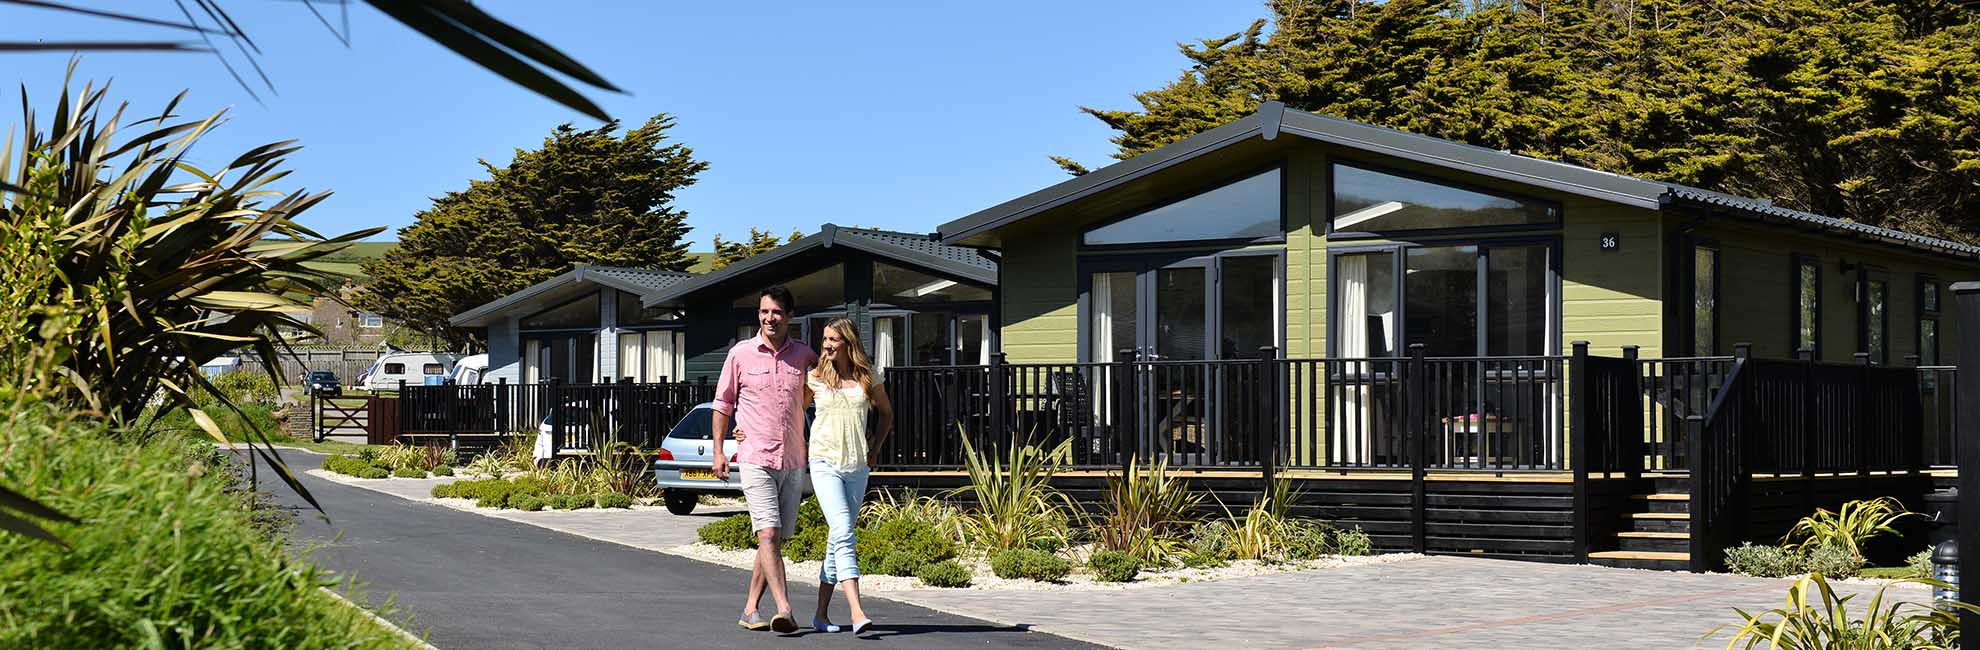 A couple walking past a row of luxury lodges at Ruda Holiday Park in Devon